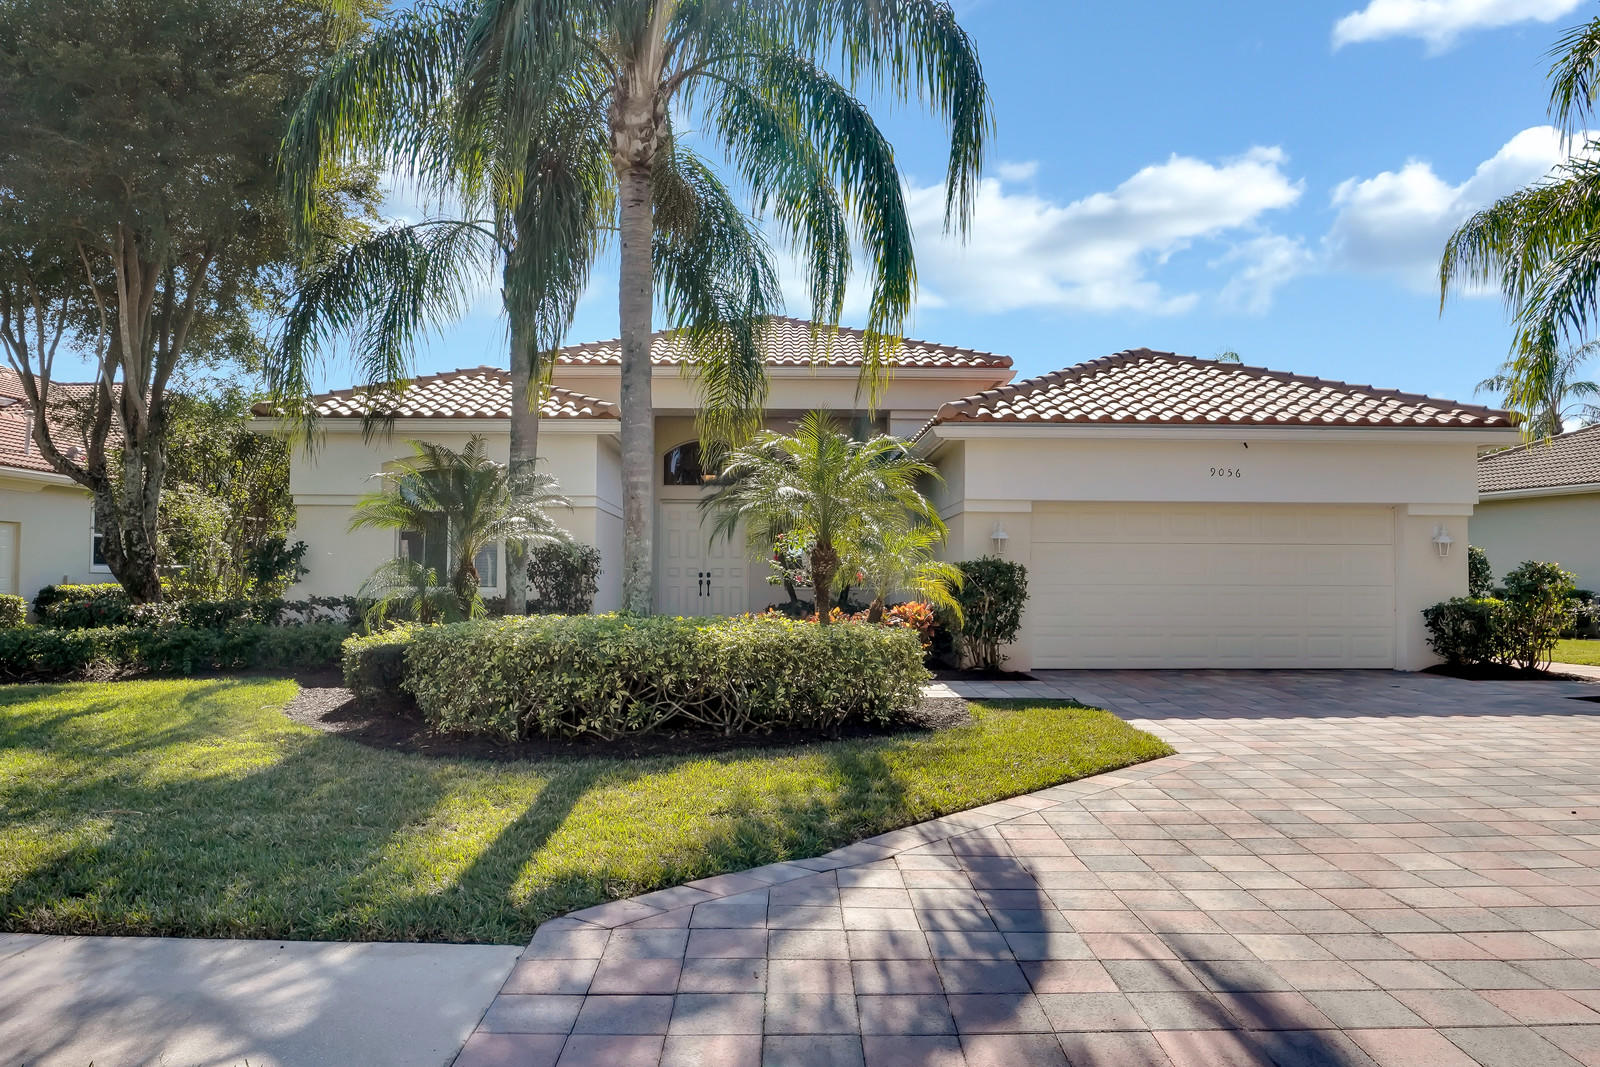 Home for sale in Ibis - Ibis Isle West Palm Beach Florida